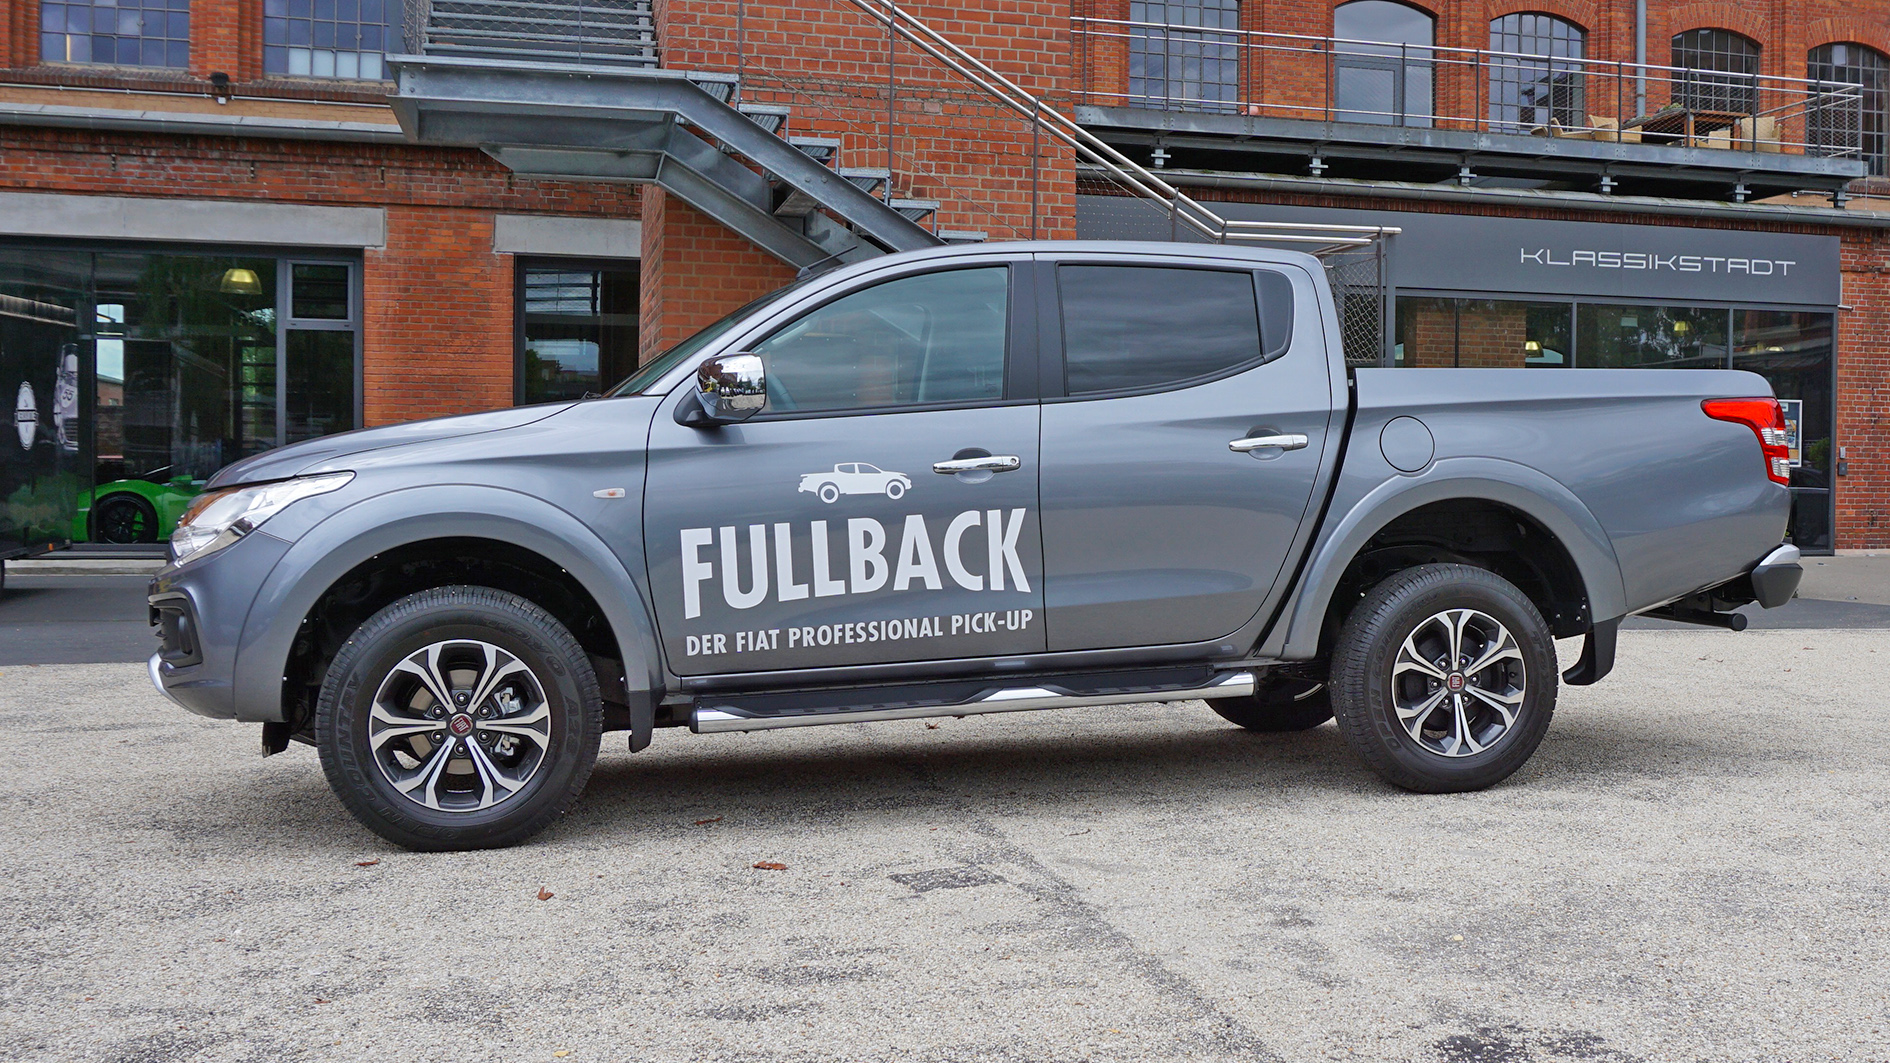 fahrbericht fiat fullback 2016 pickup test auto. Black Bedroom Furniture Sets. Home Design Ideas